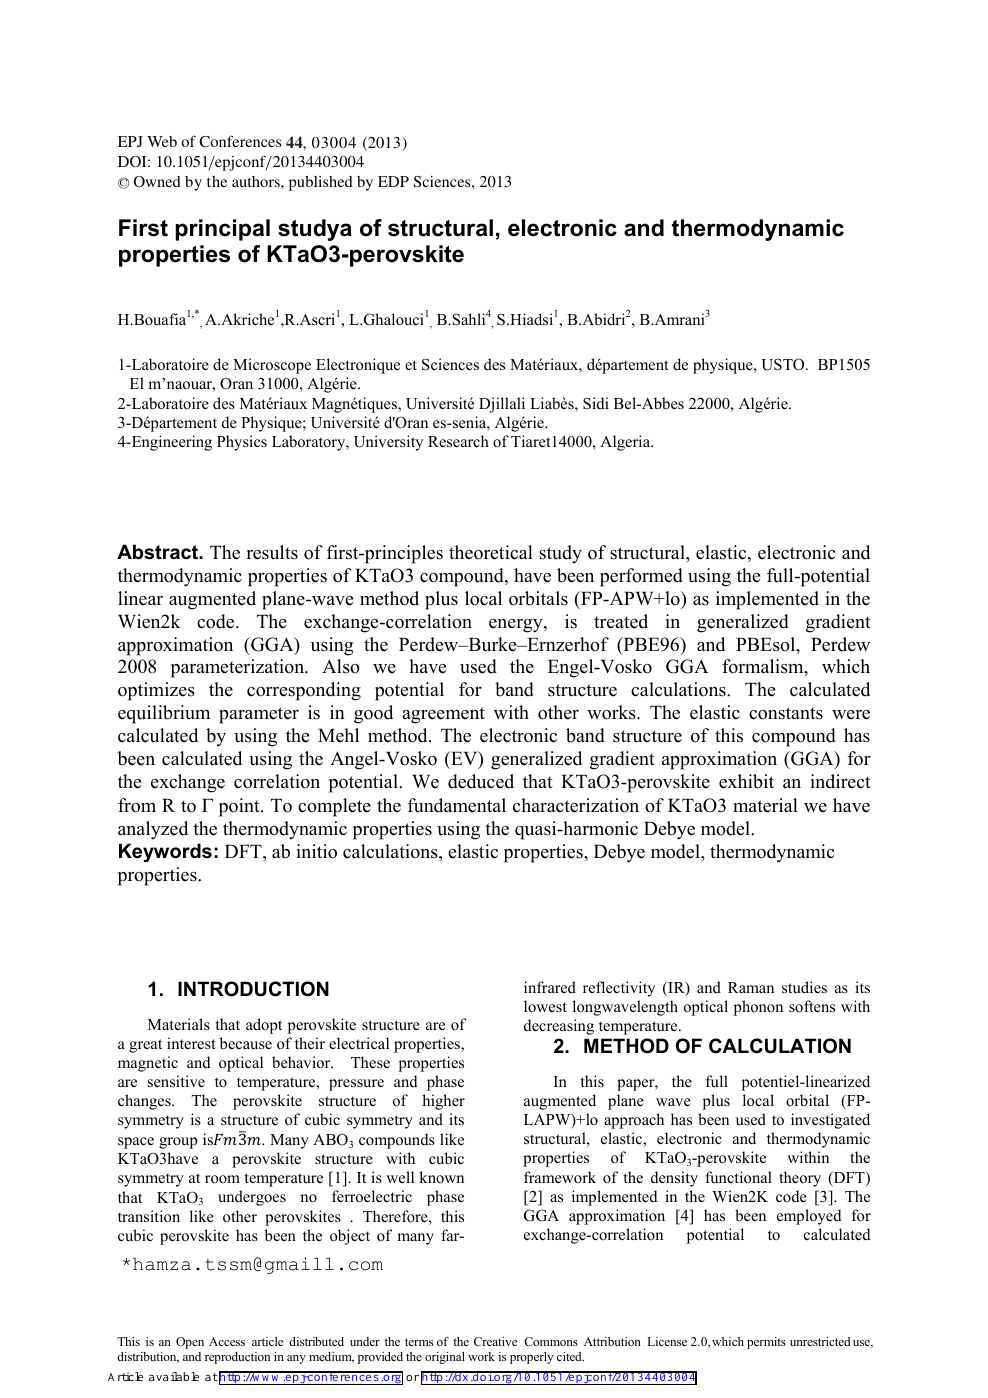 First Principal Studya Of Structural Electronic And Thermodynamic